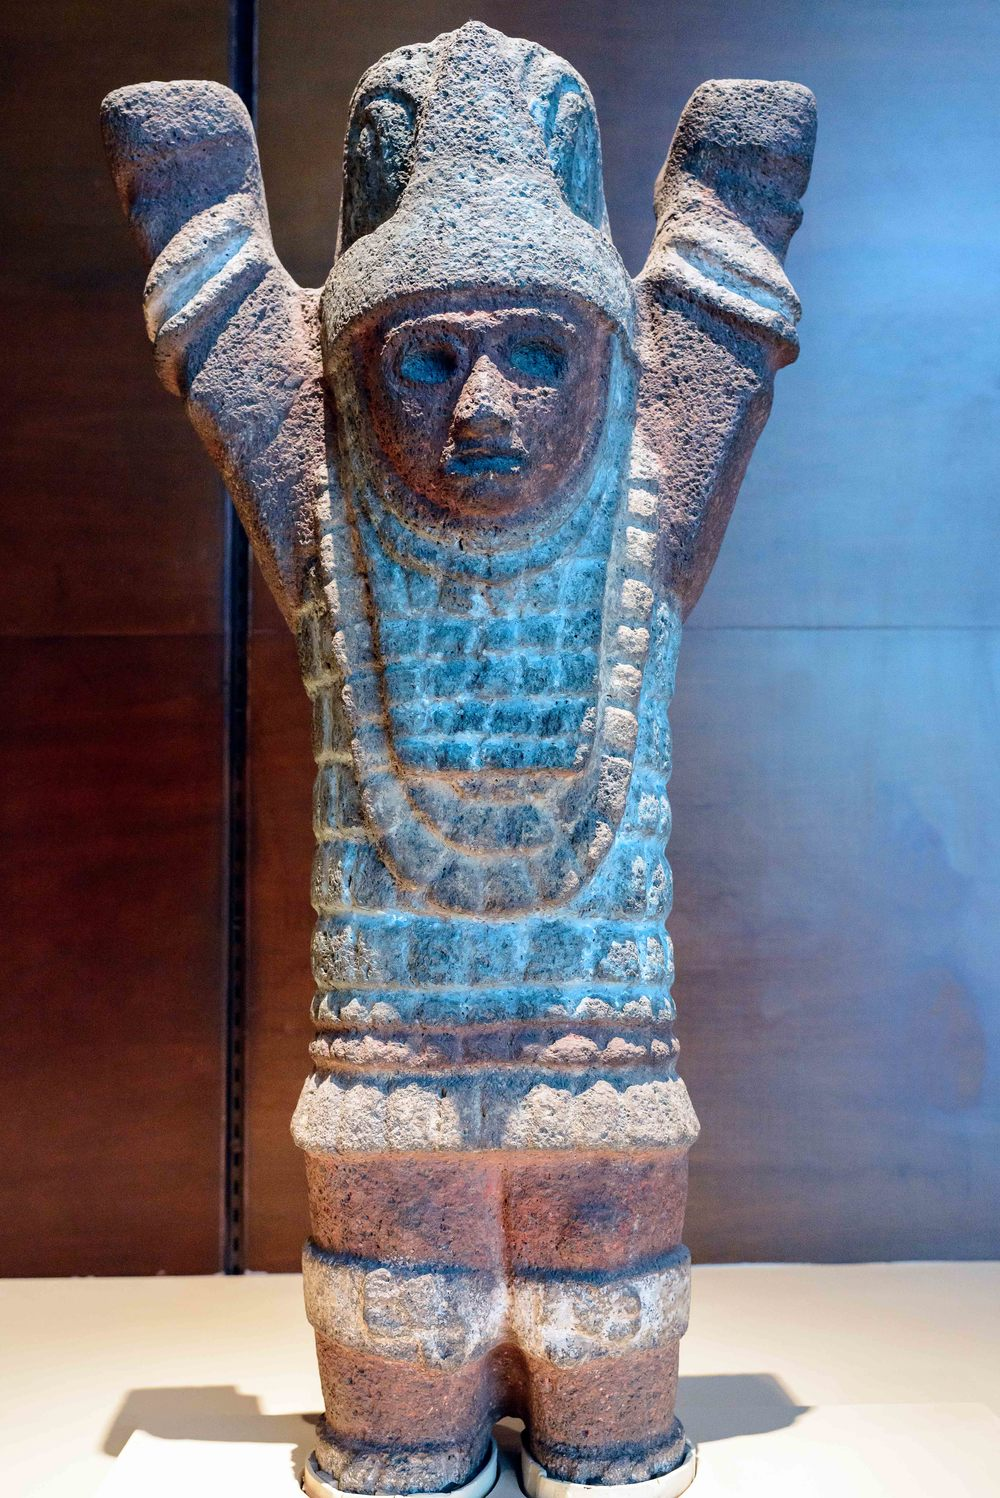 Miniature Atlantean, Tula. This worrior held an altar where offerings were placed.